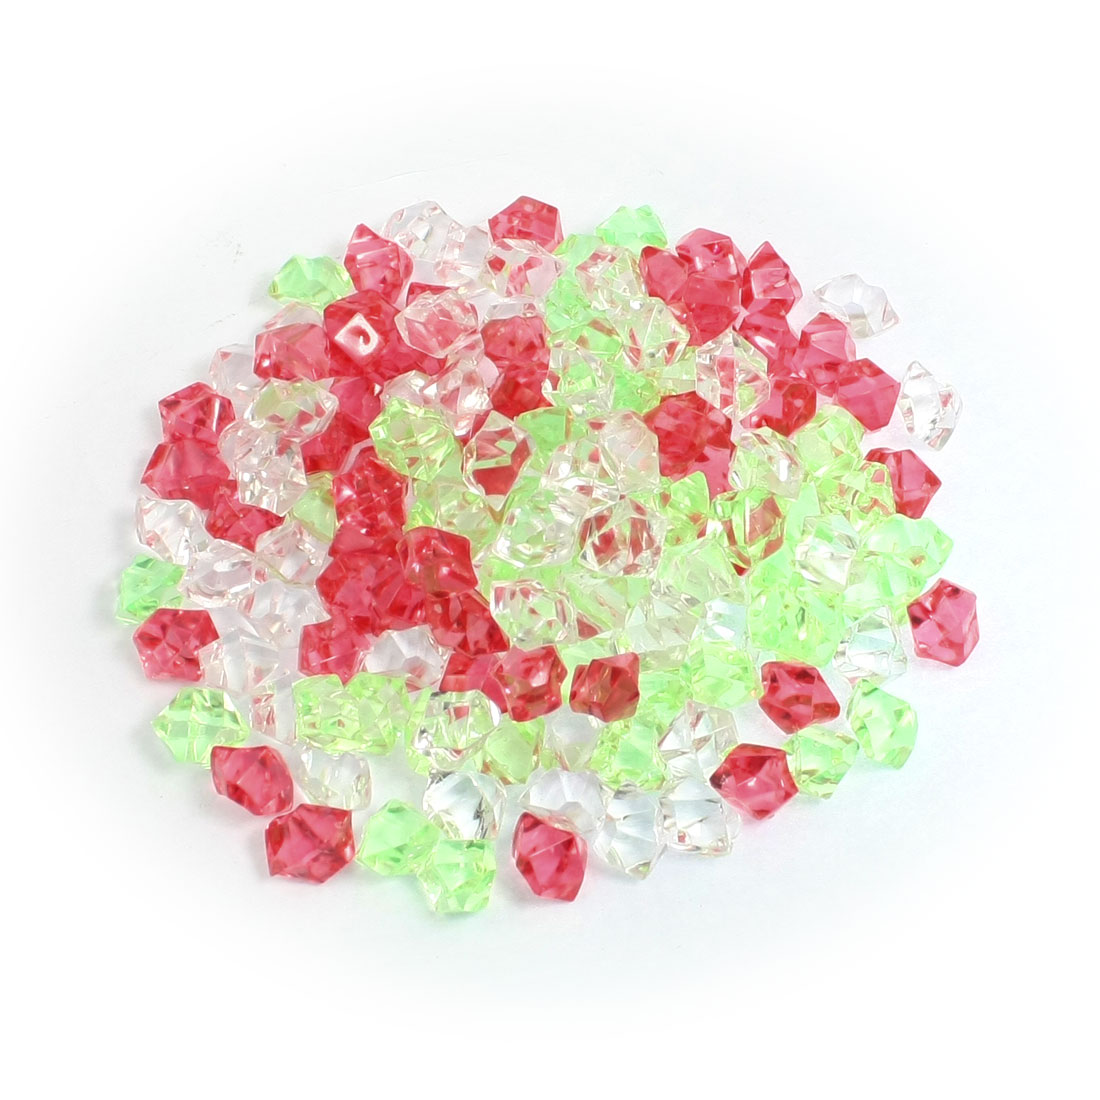 Fish Tank Decoration Red Green White Faux Crystal Stones 150Pcs